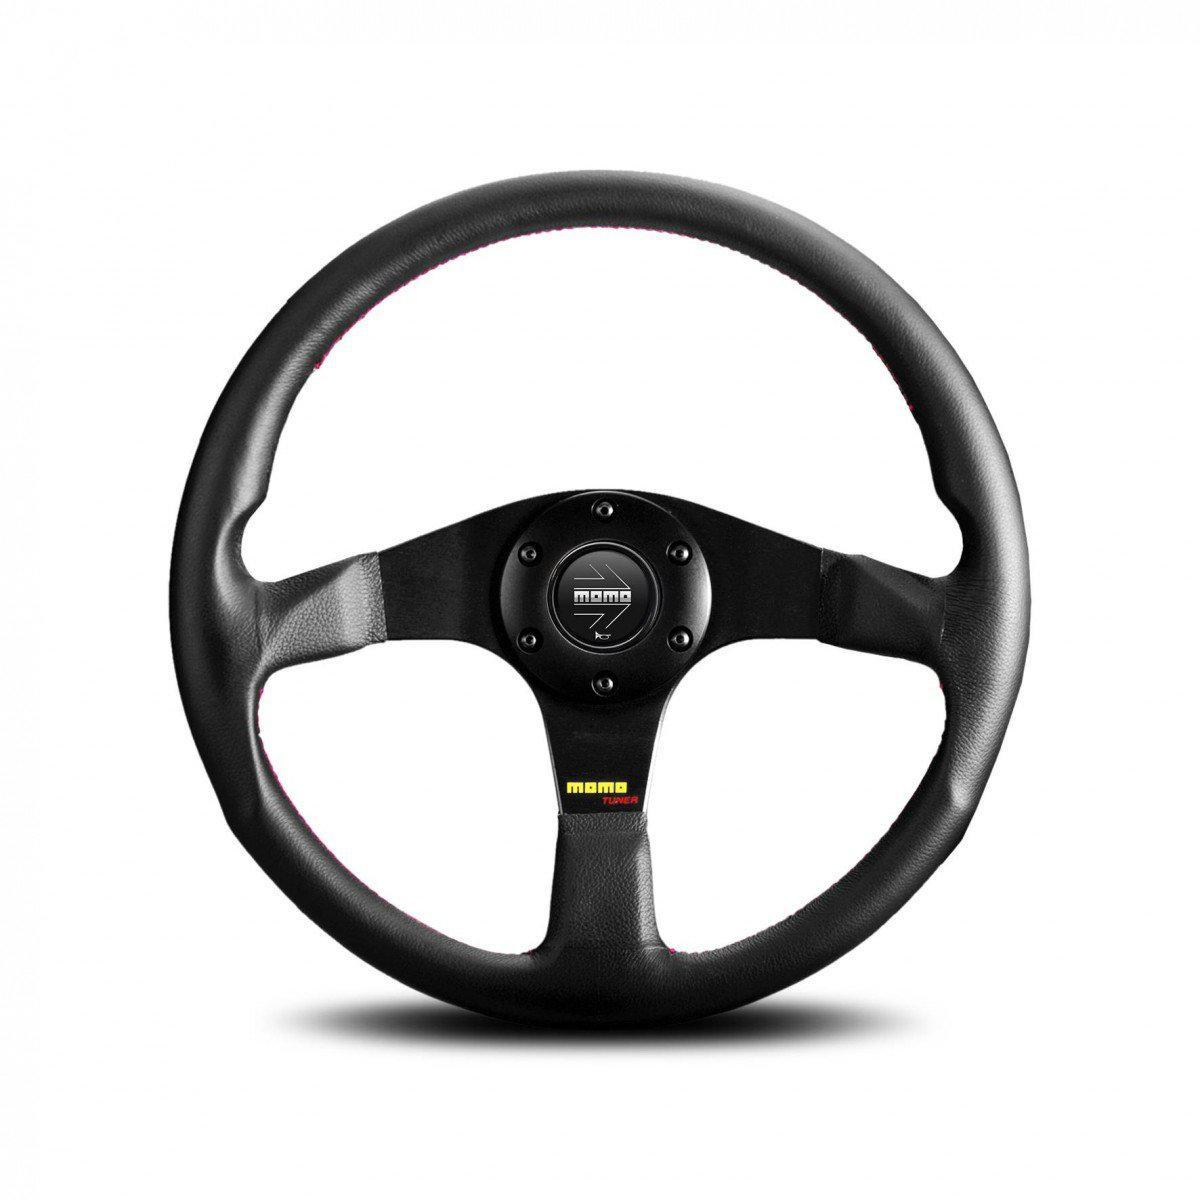 MOMO Tuner - Leather Street Steering Wheel FAF Automotive 320mm Black Leather